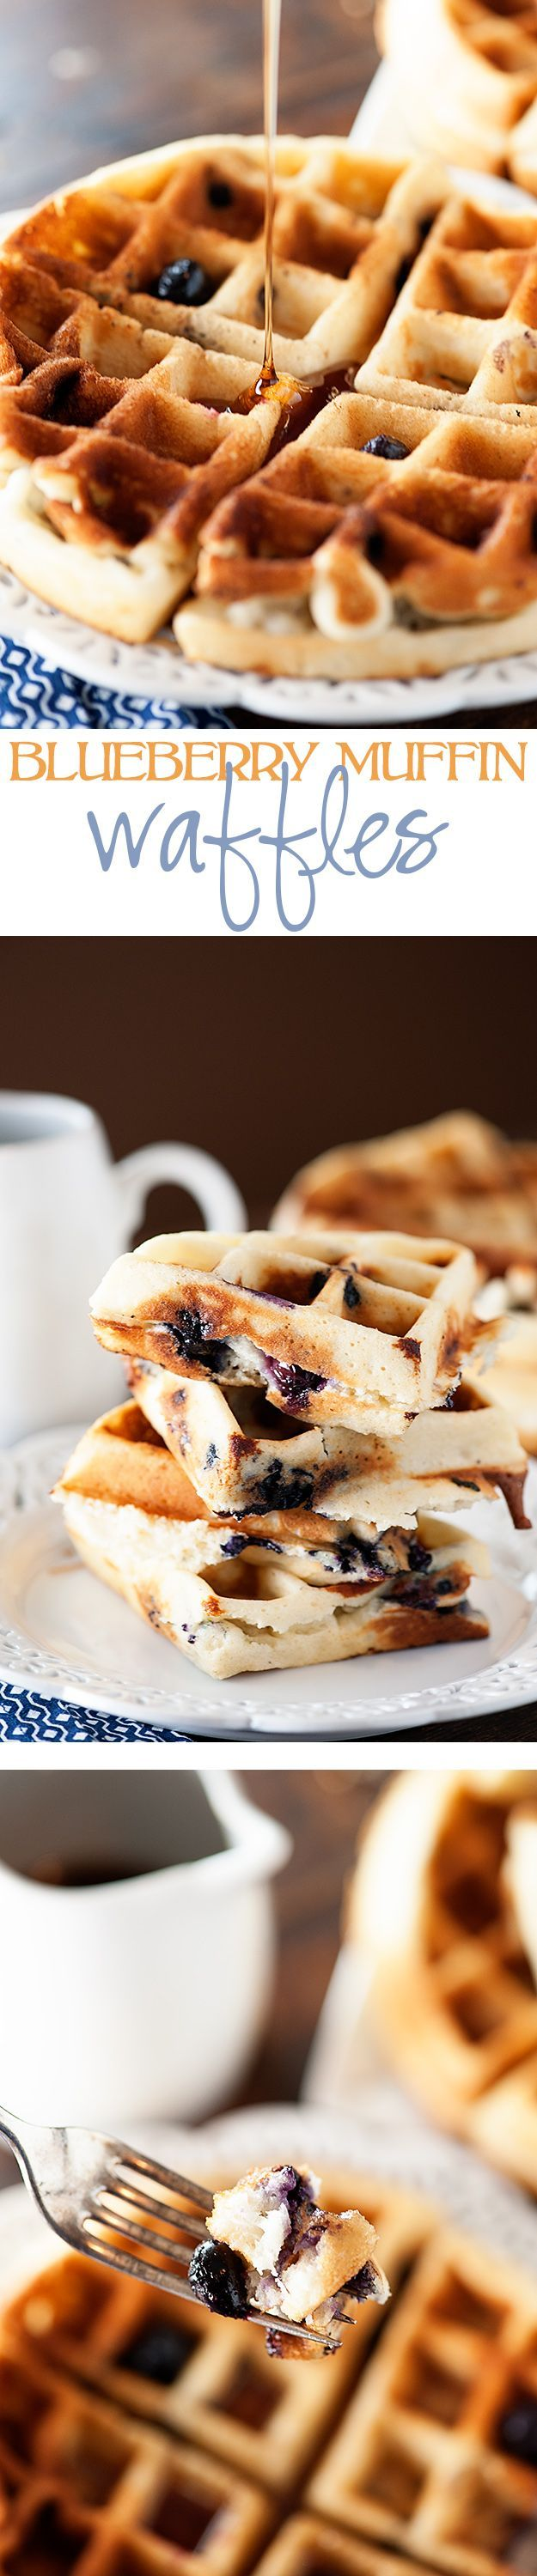 Blueberry Muffin Waffle - Tender blueberry muffins made in a waffle iron and covered in maple syrup!